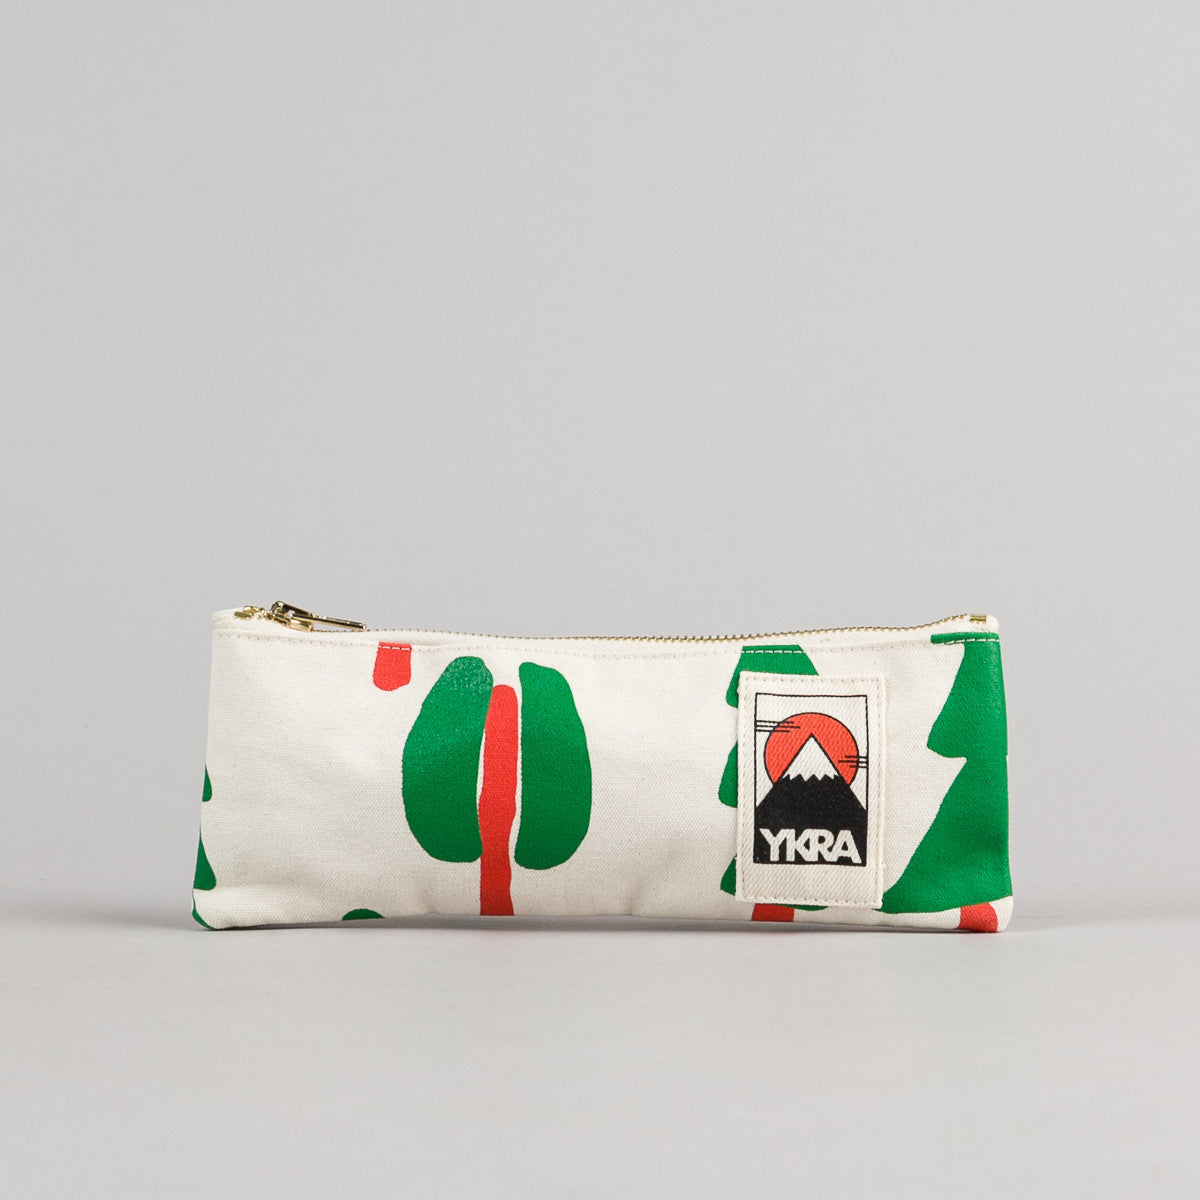 YKRA Pencil Case - STF Print